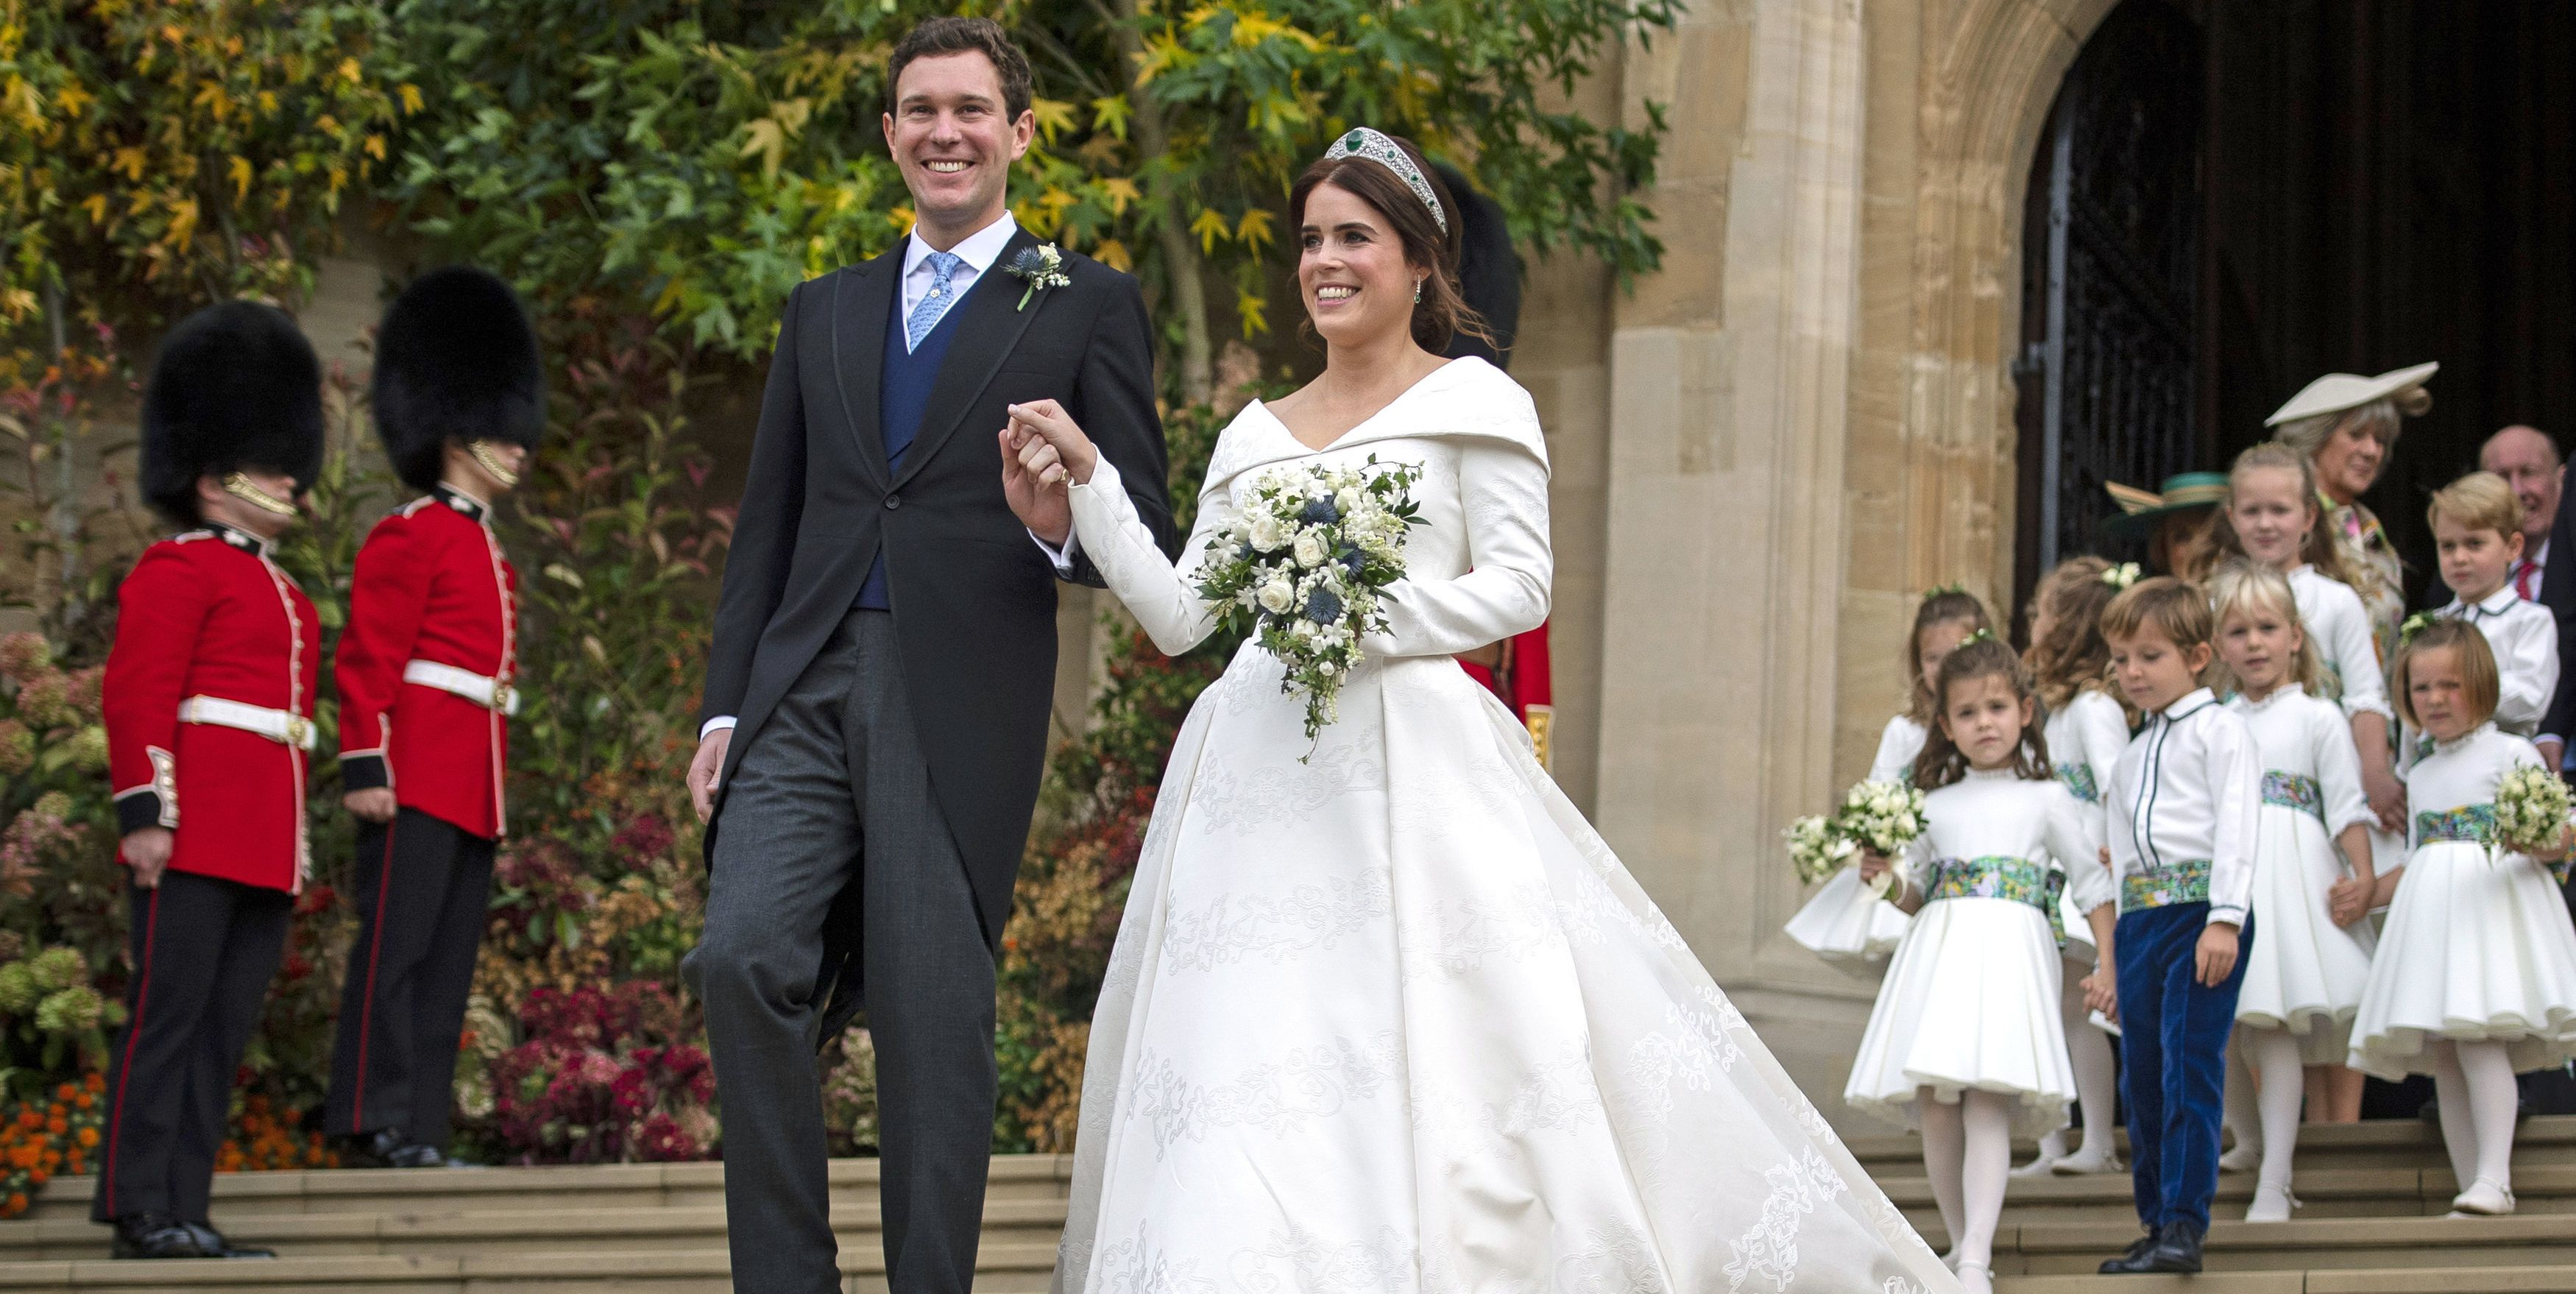 BRITAIN-ROYALS-WEDDING-EUGENIE-CEREMONY